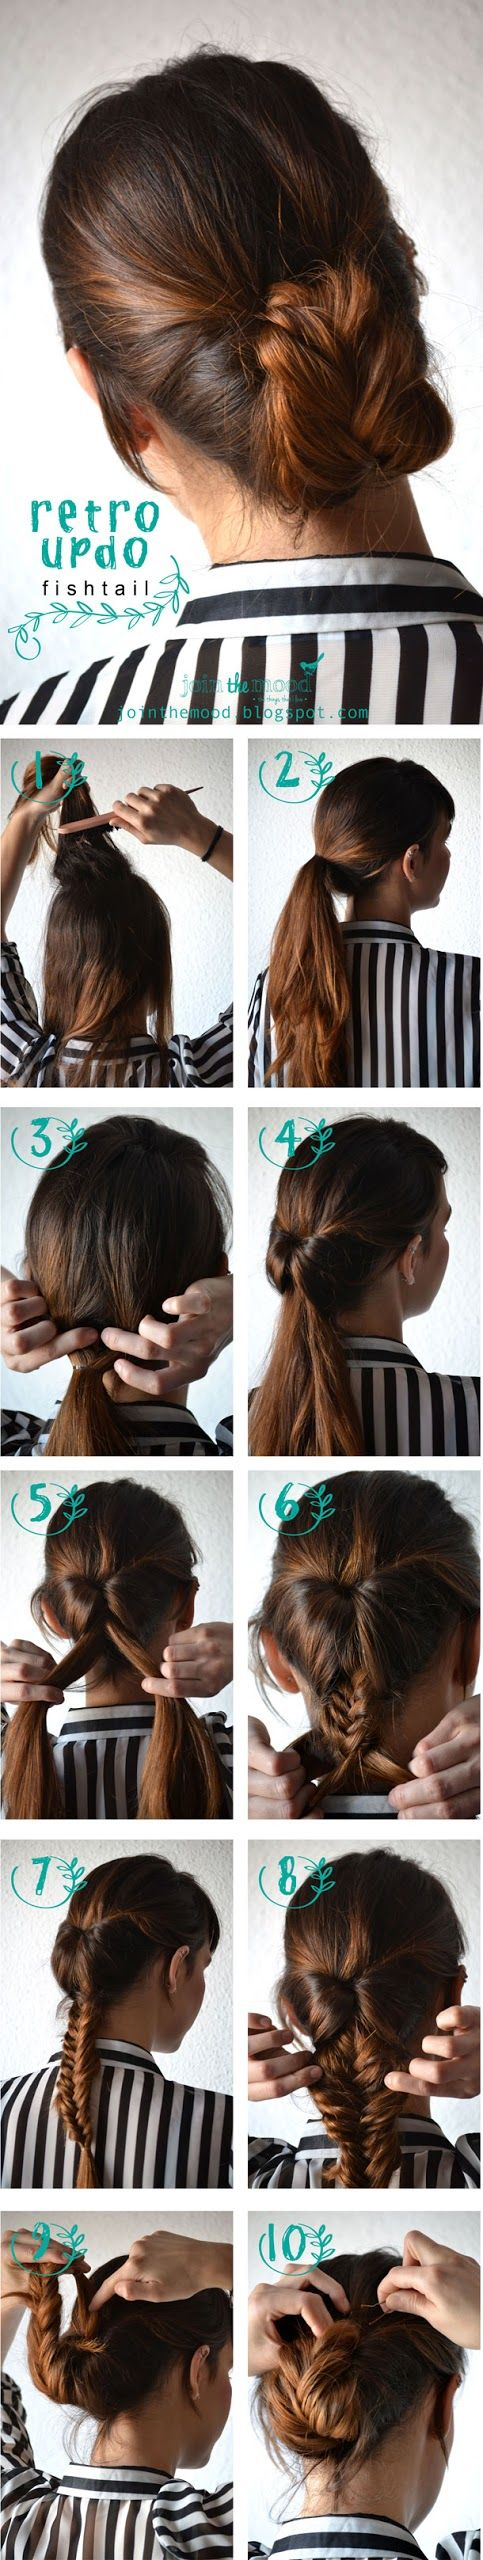 The Best 25 Useful Hair Tutorials Ever, Retro Updo Fishtail